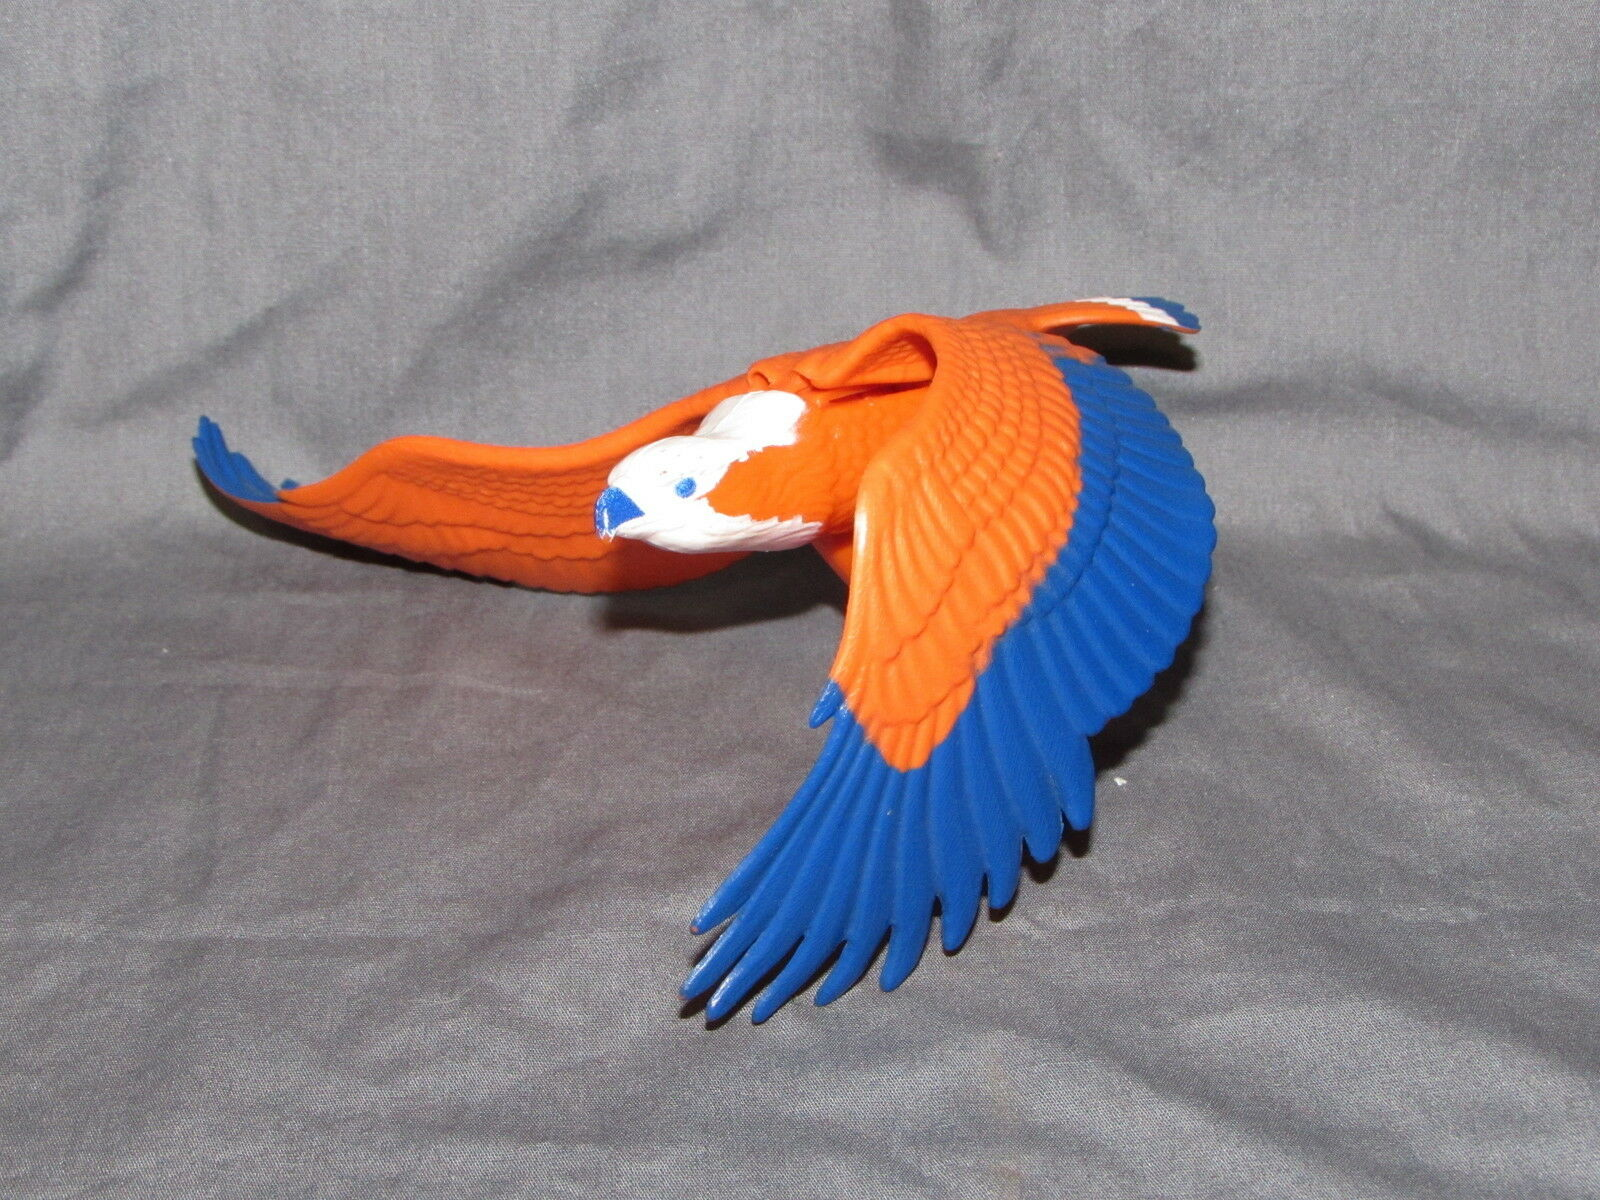 Zoar the Falcon Vintage Masters of the the the Universe Figure Excellent Condition 0e5789